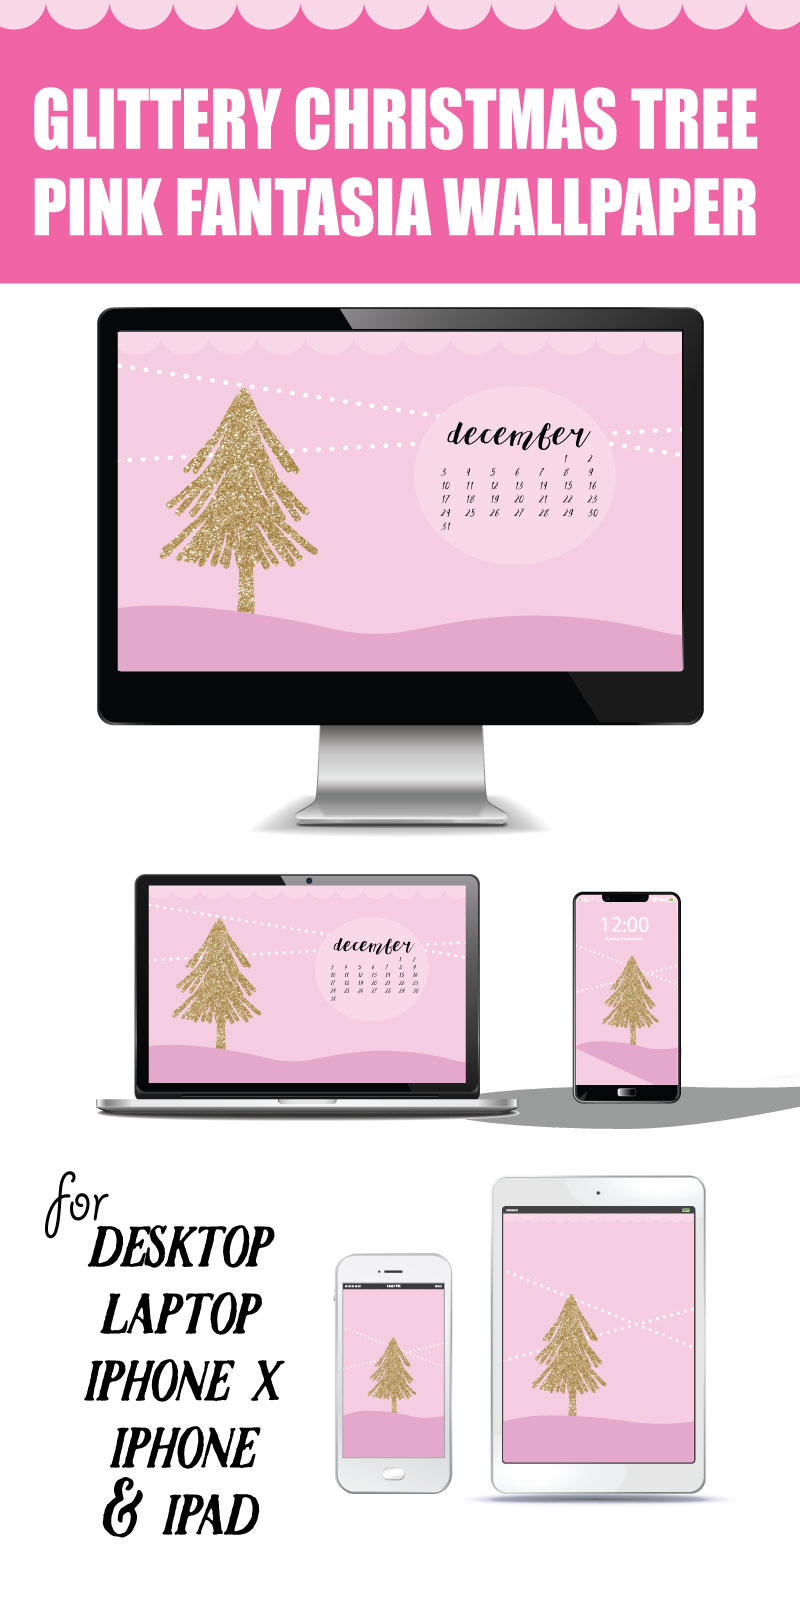 Deck out your Devices with this Free Glittery Tree Pink Fantasia Wallpaper! For Desktop, laptop, Ipad, Iphone X, Iphone and apple watch #christmas #digitalwallpaper #dressyourtech #imac #ipad #iphone #iphonex